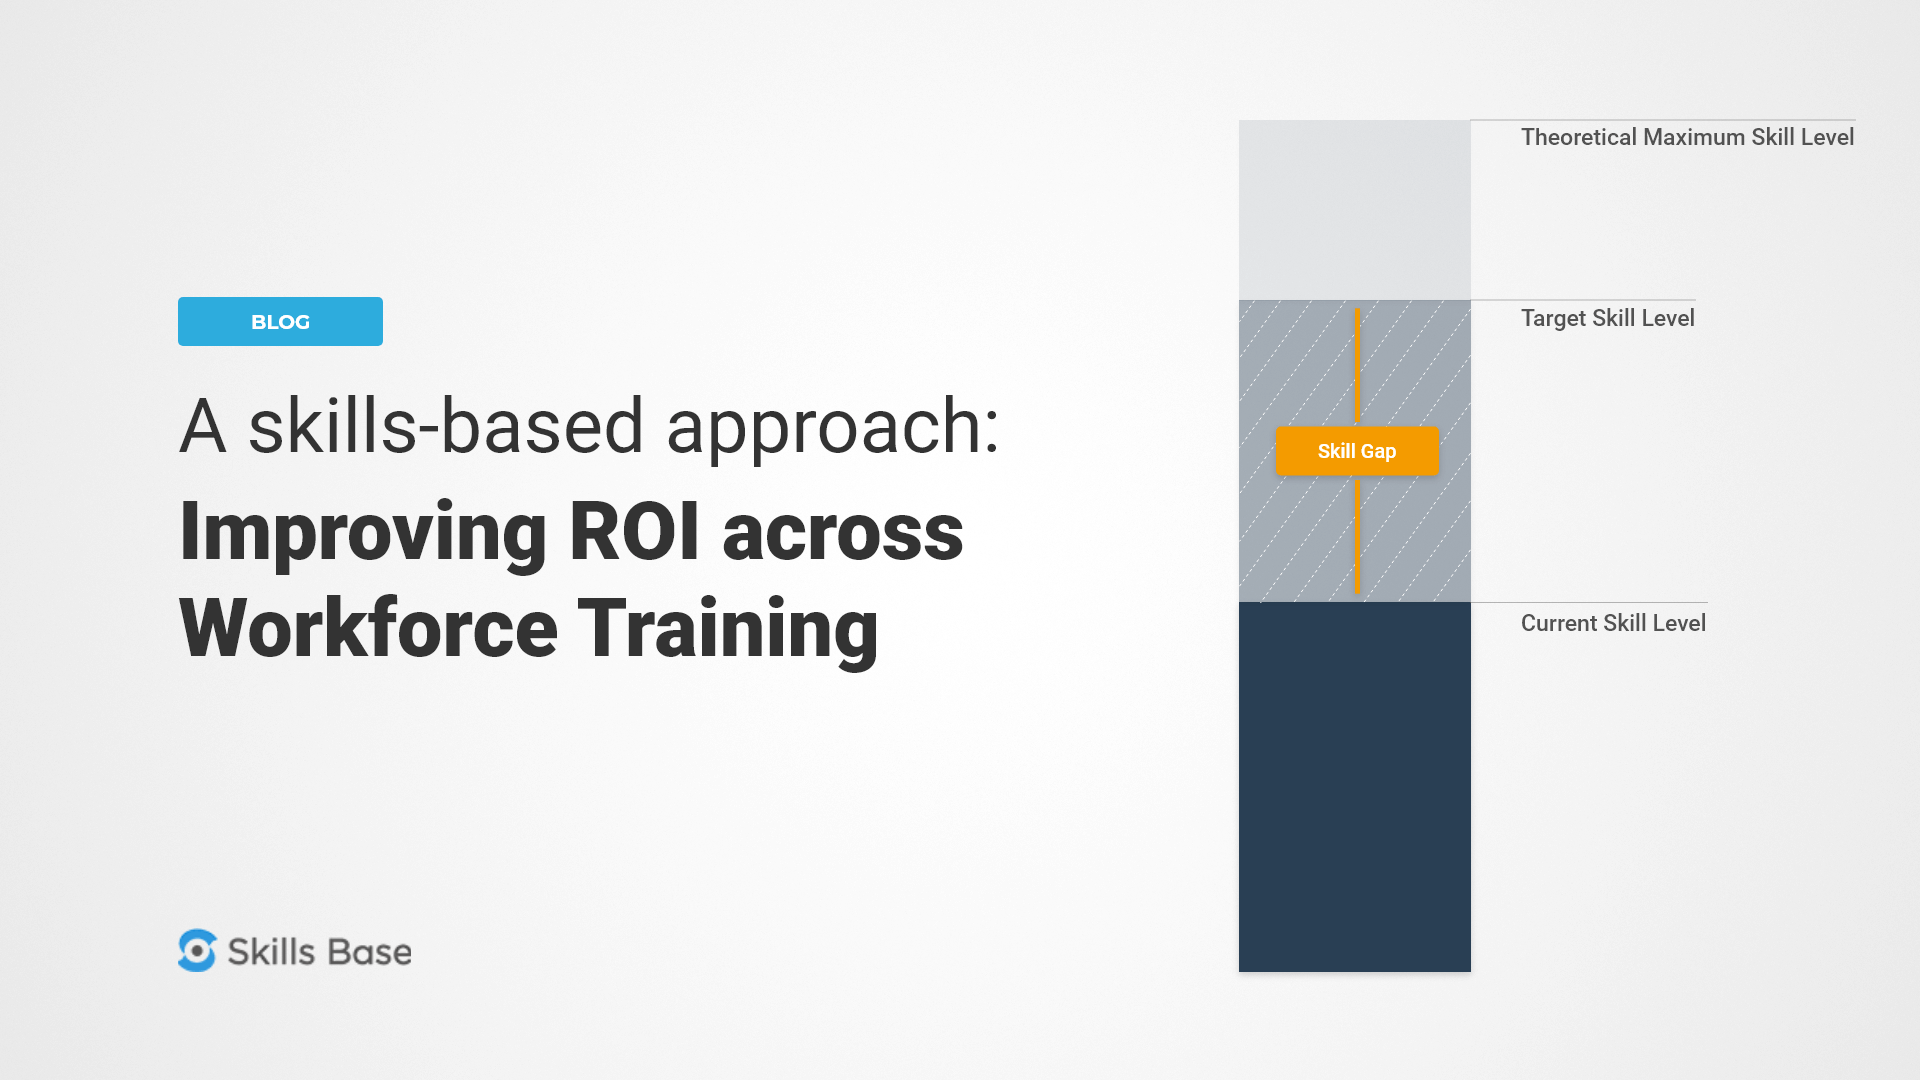 Improving ROI across Workforce Training - Using a skills-based approach